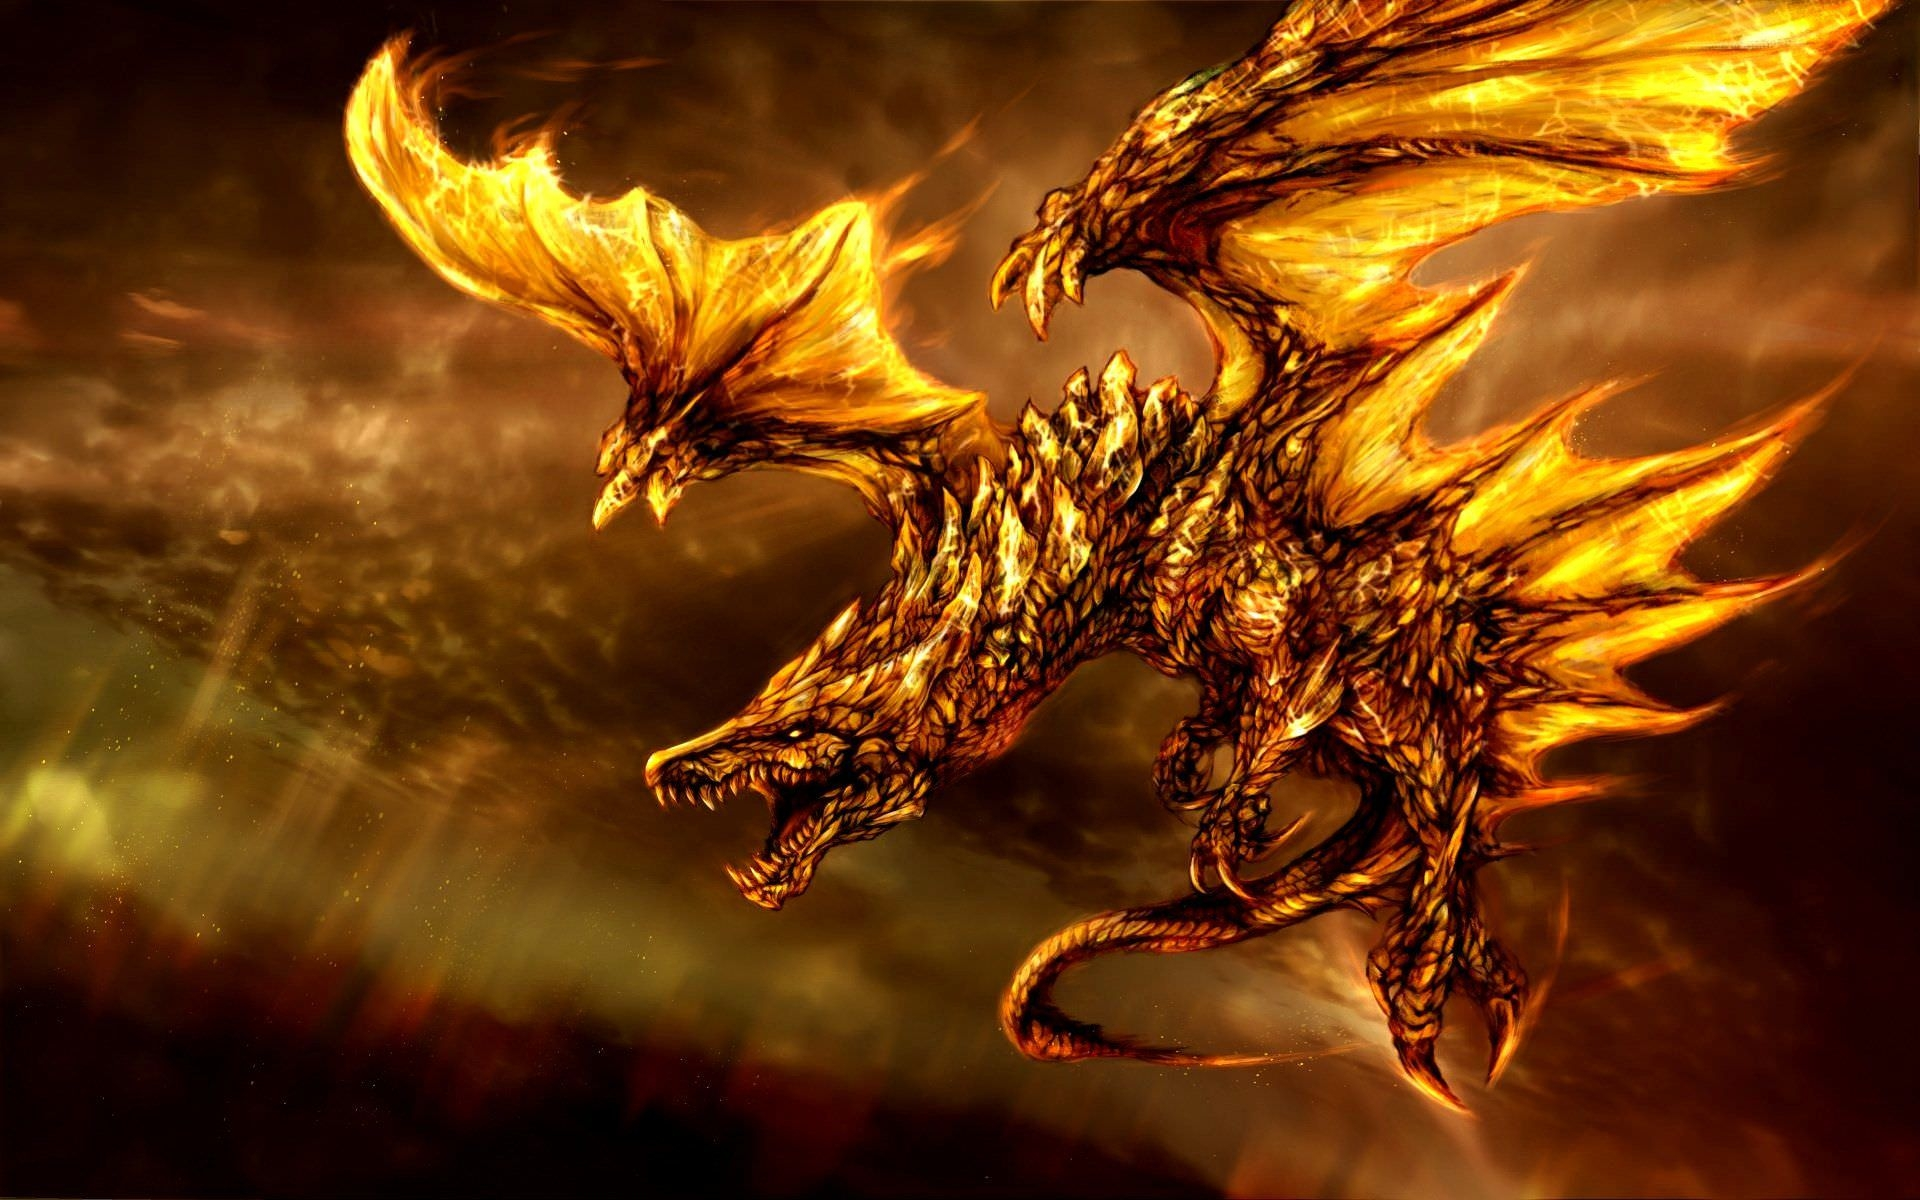 3D Fire Dragon Desktop Wallpaper